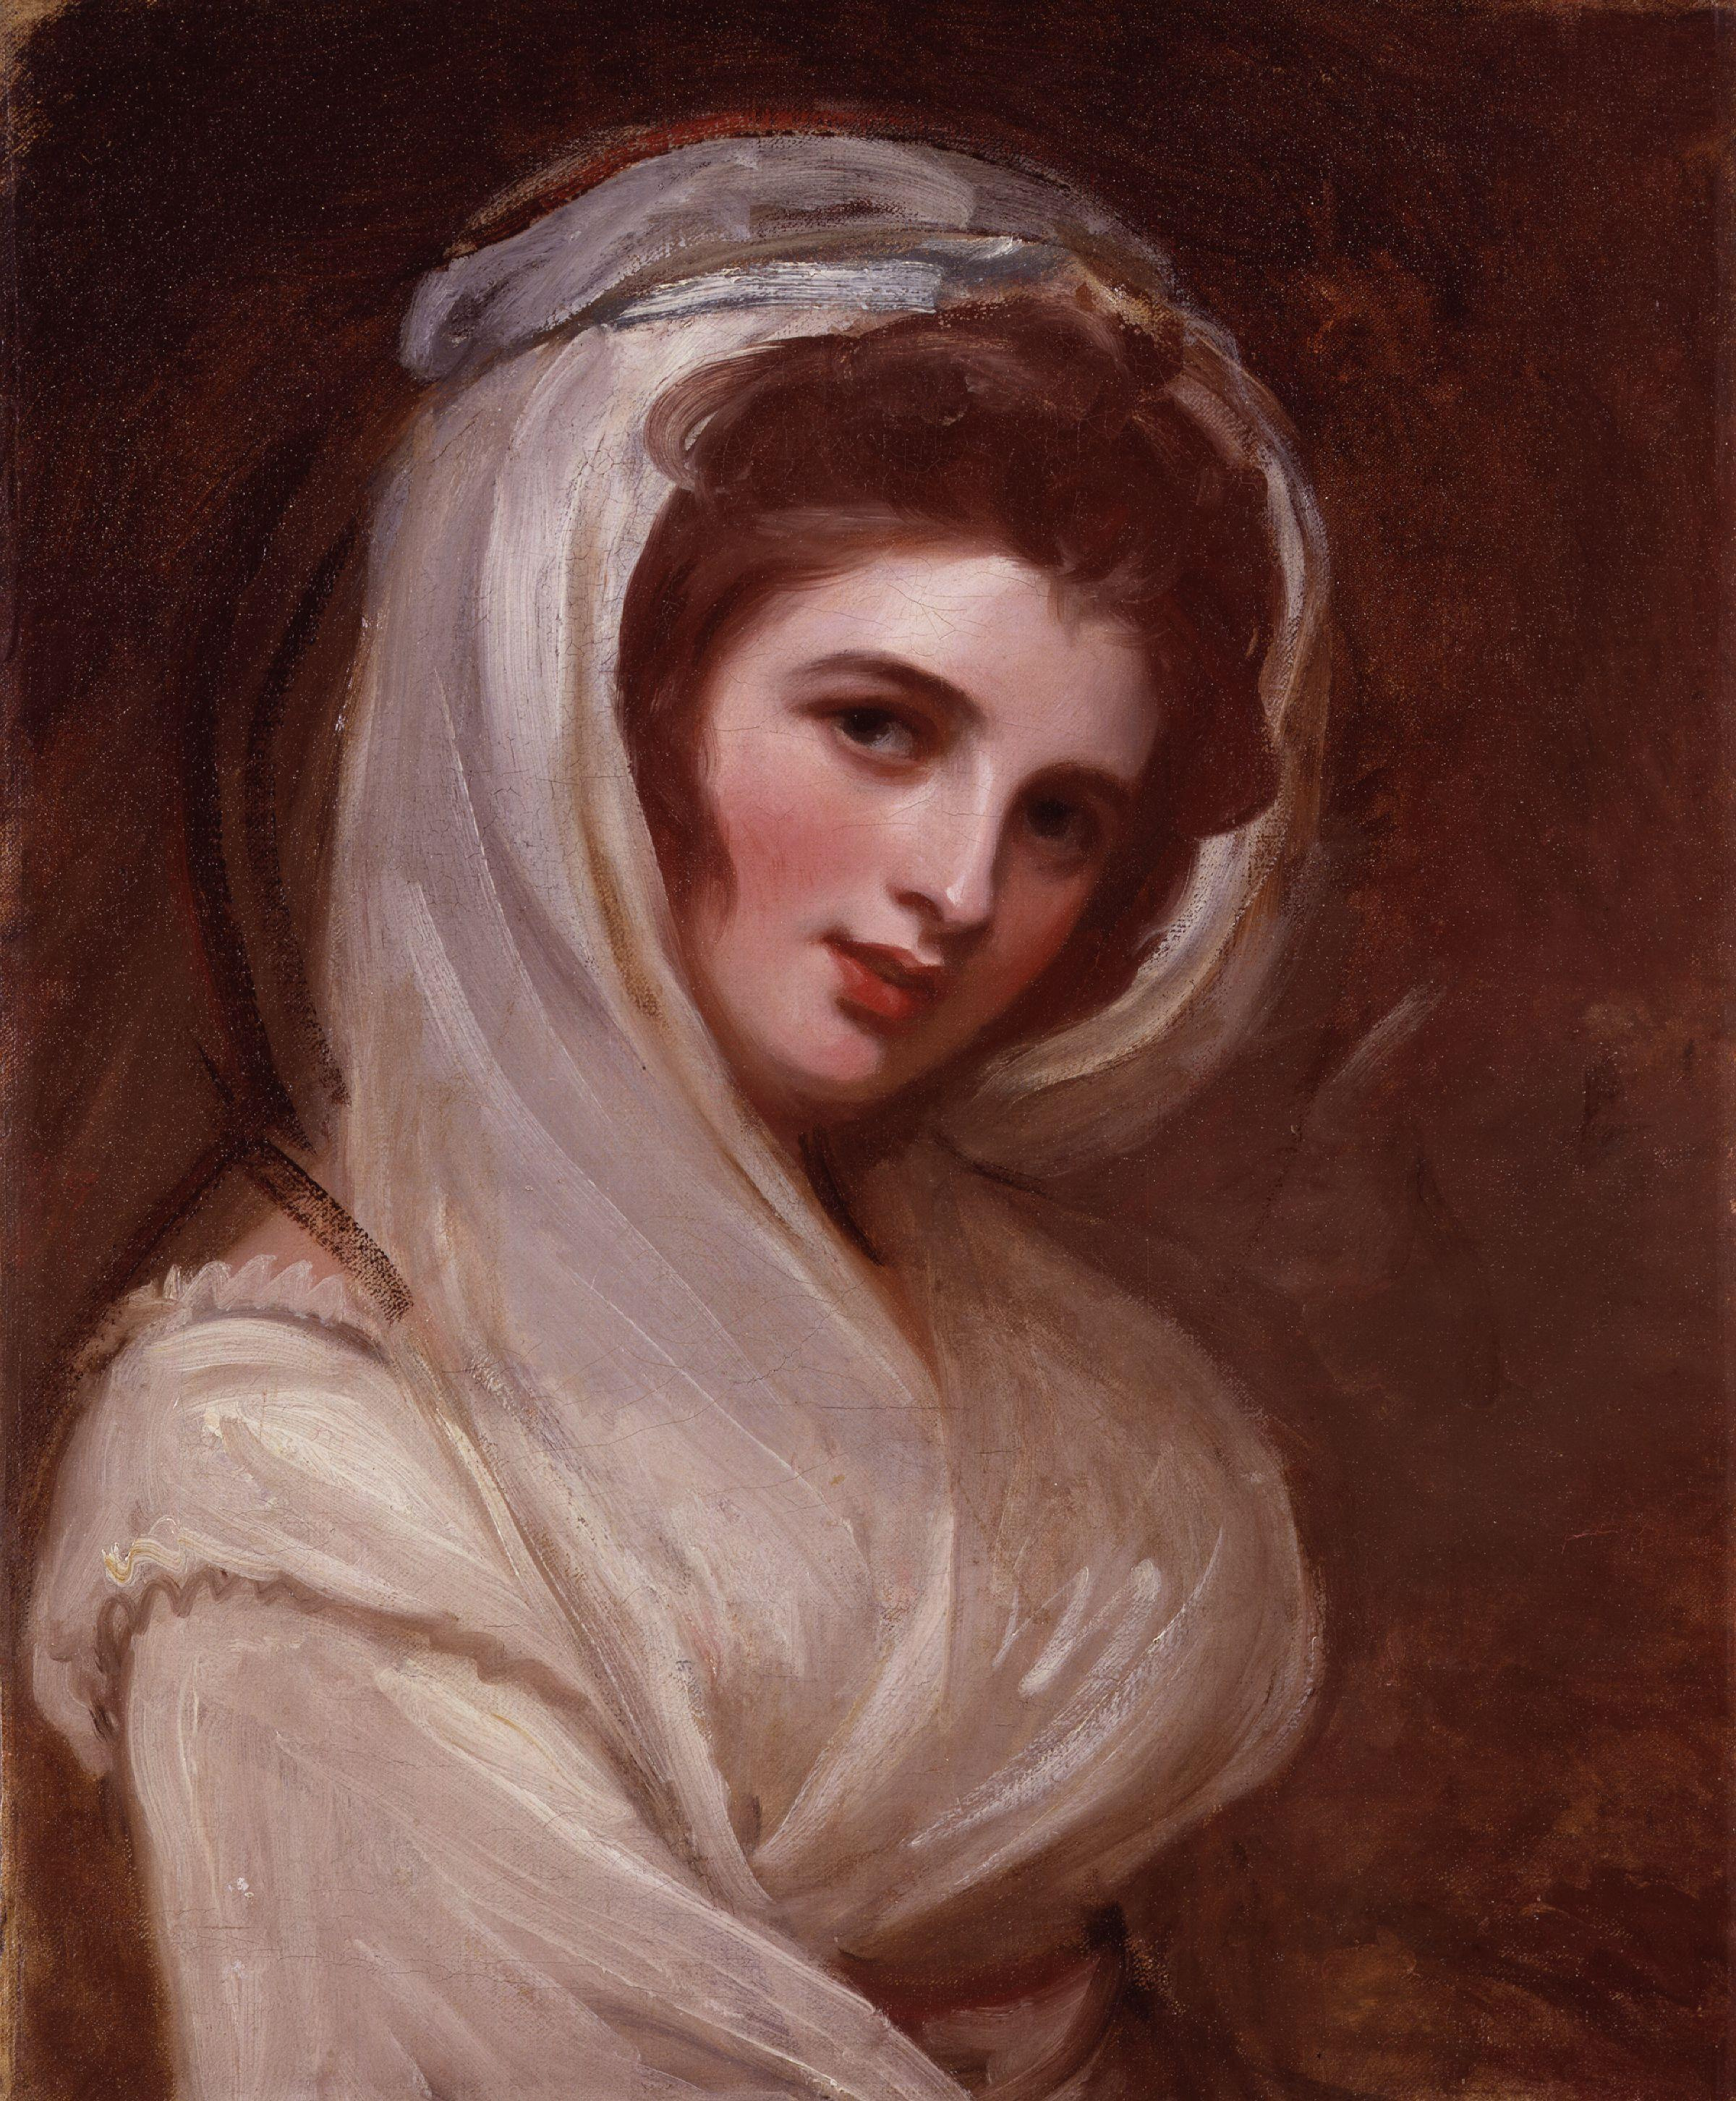 https://i0.wp.com/upload.wikimedia.org/wikipedia/commons/e/e2/Emma%2C_Lady_Hamilton_by_George_Romney.jpg